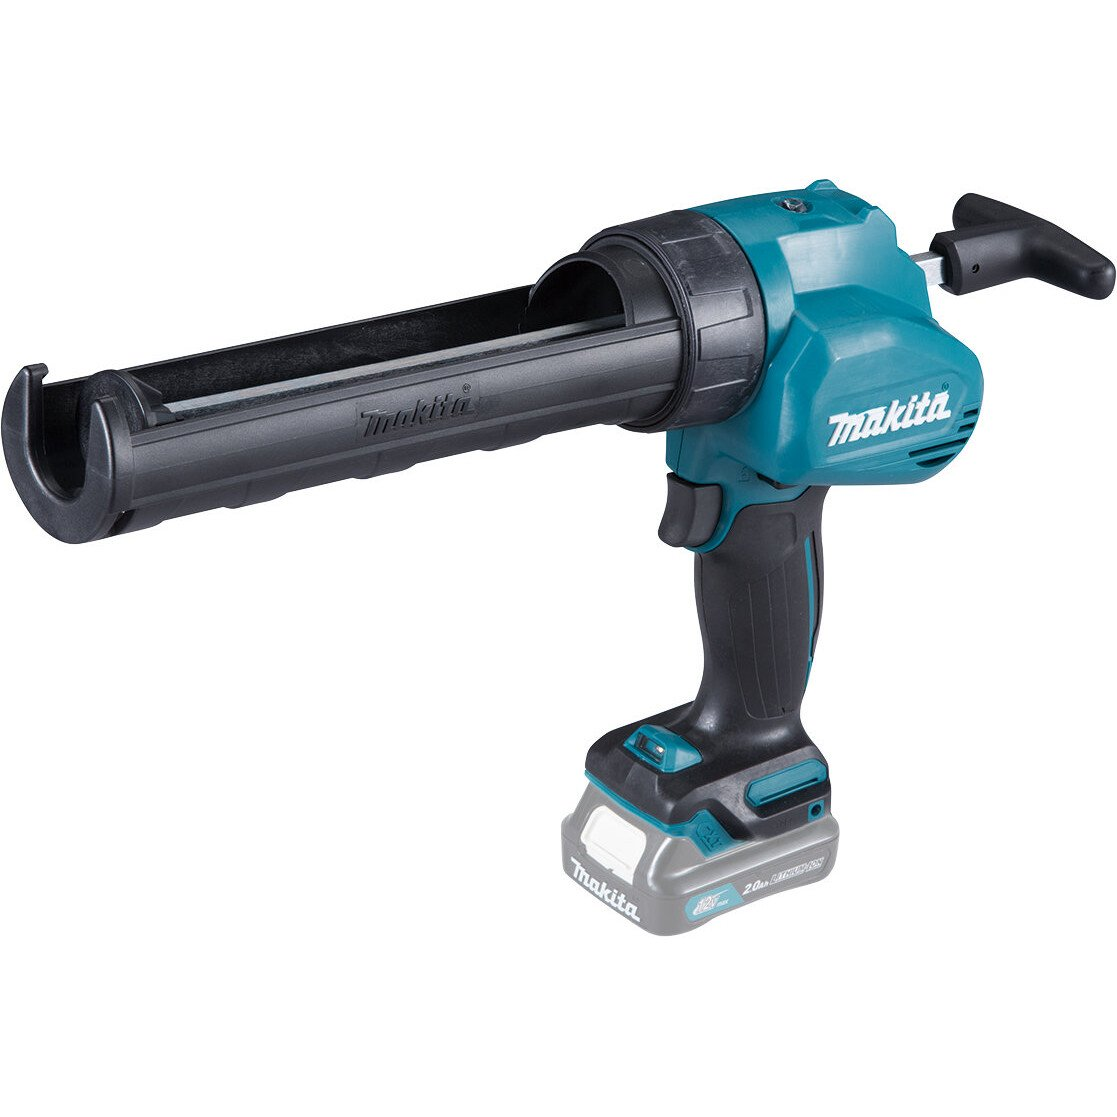 Makita CG100DZA Body Only 10.8V CXT Caulking Gun